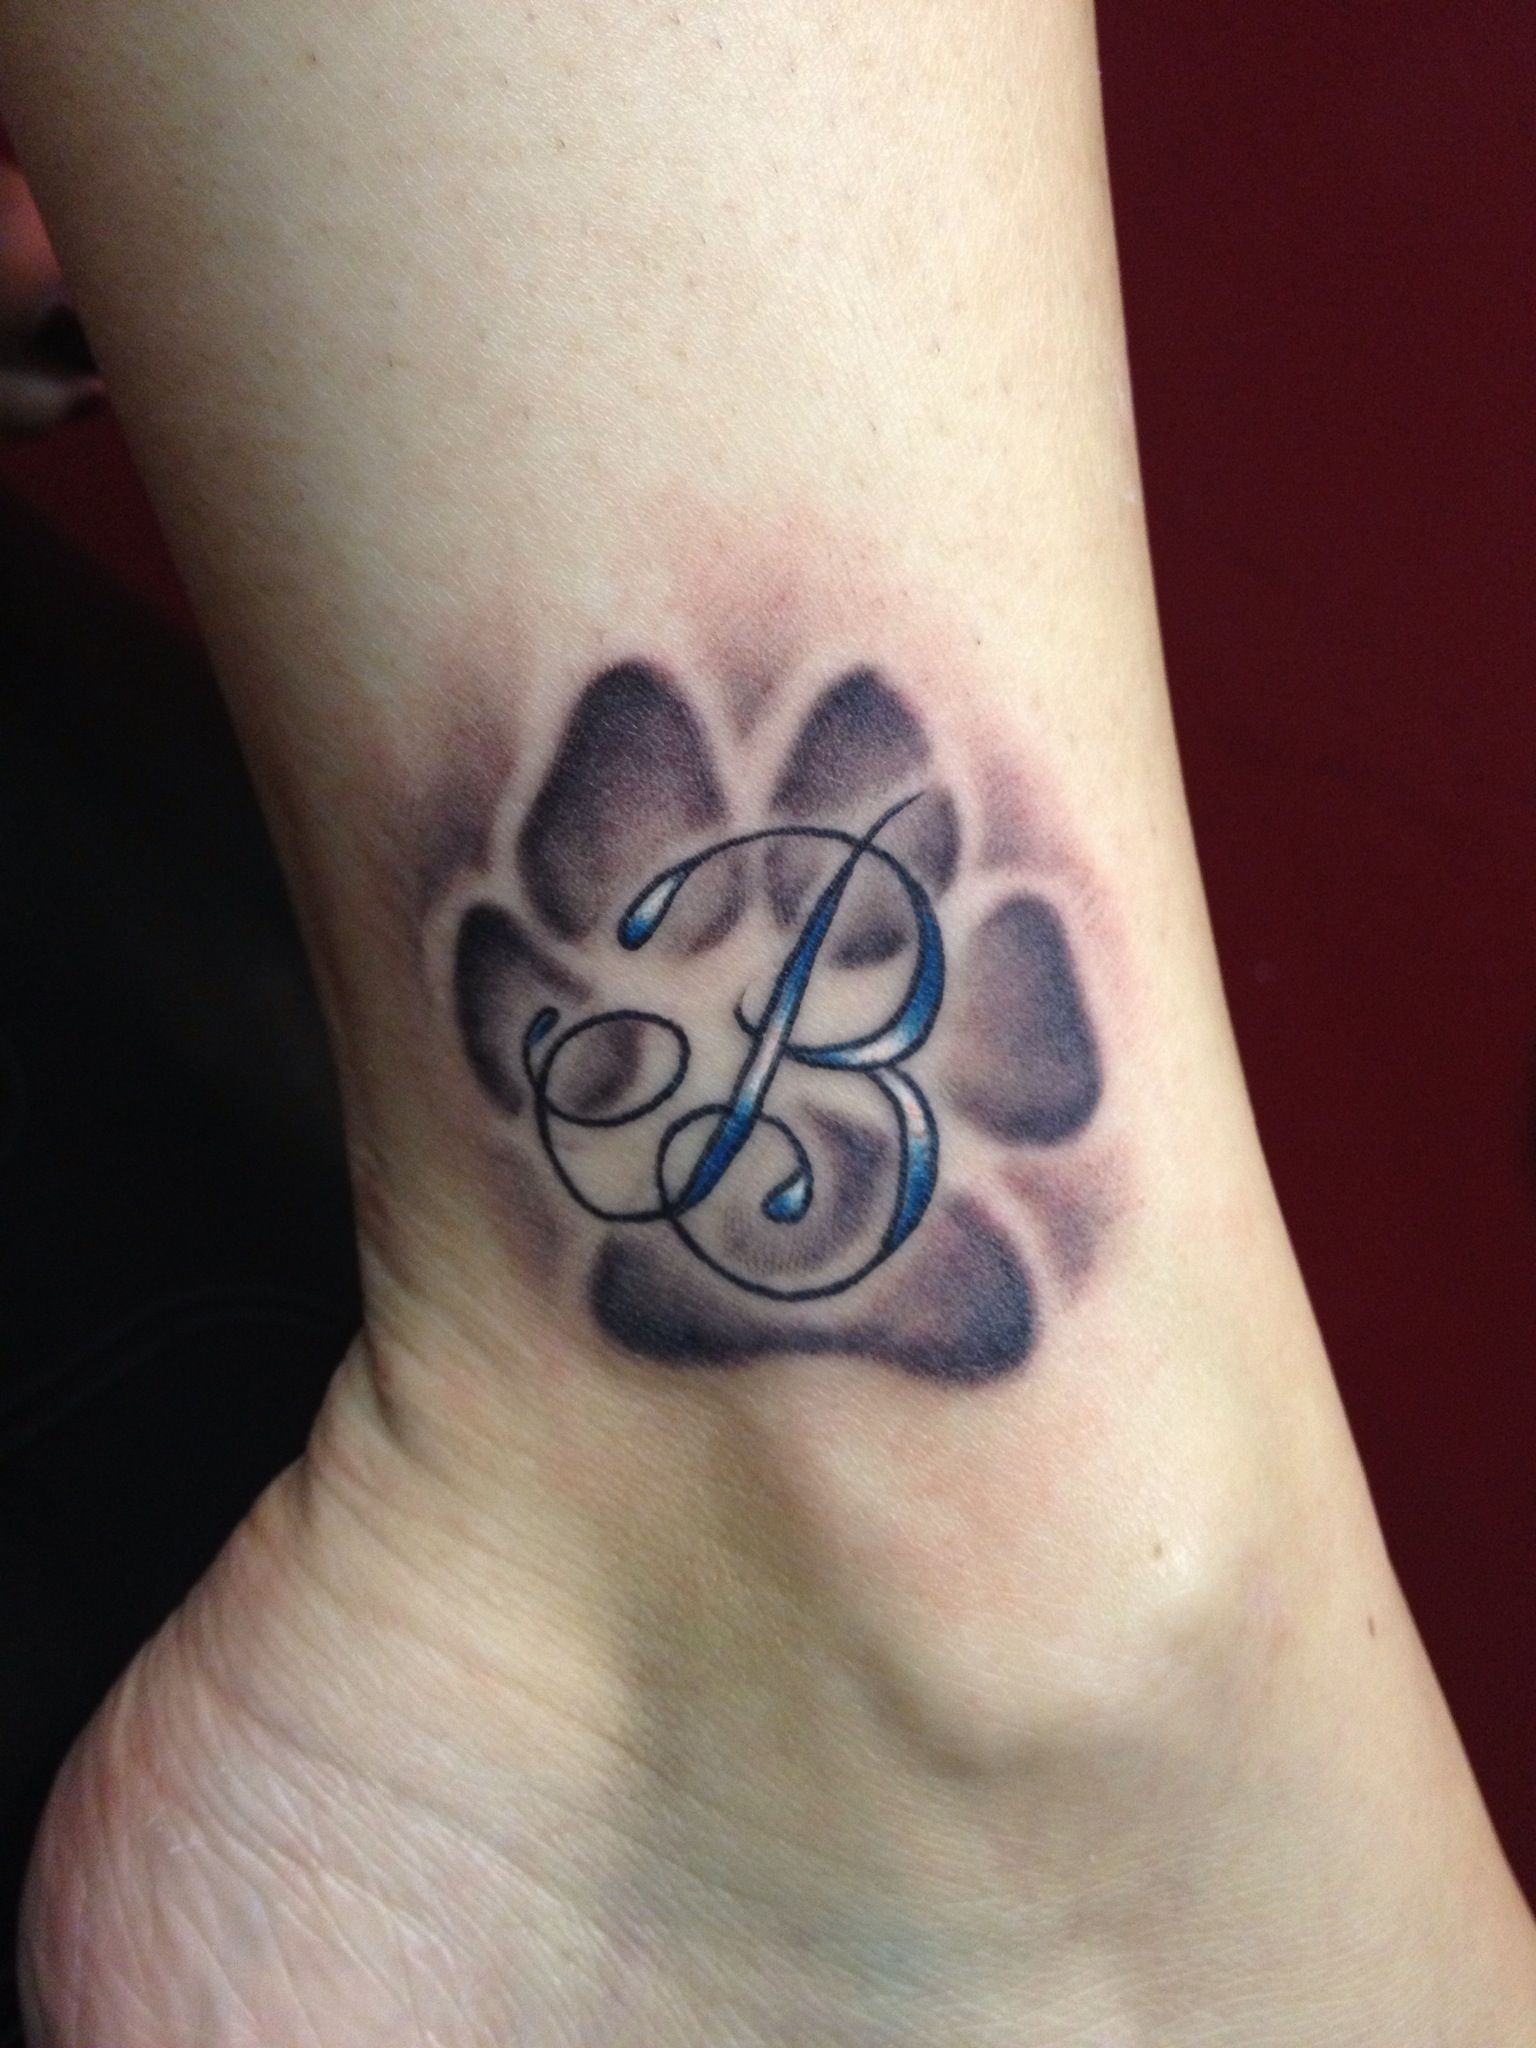 Black heart tattoo ideas dog paw print tattoo in honor of my favorite beast of a dog brady